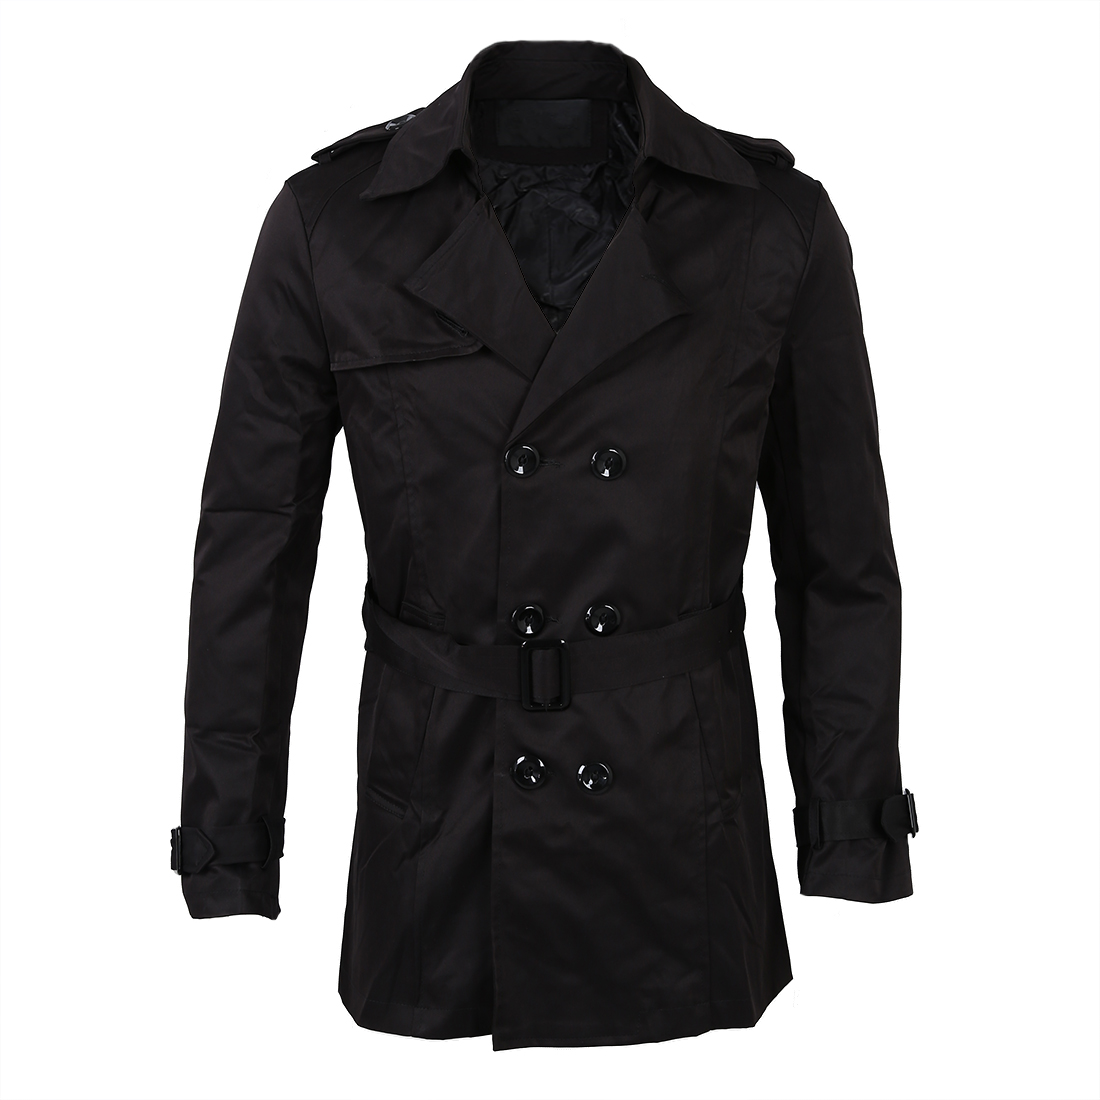 Steampunk Men Jackets Trench-Coat Double-Breasted Long Outwear Winter Masculino Abrigo title=